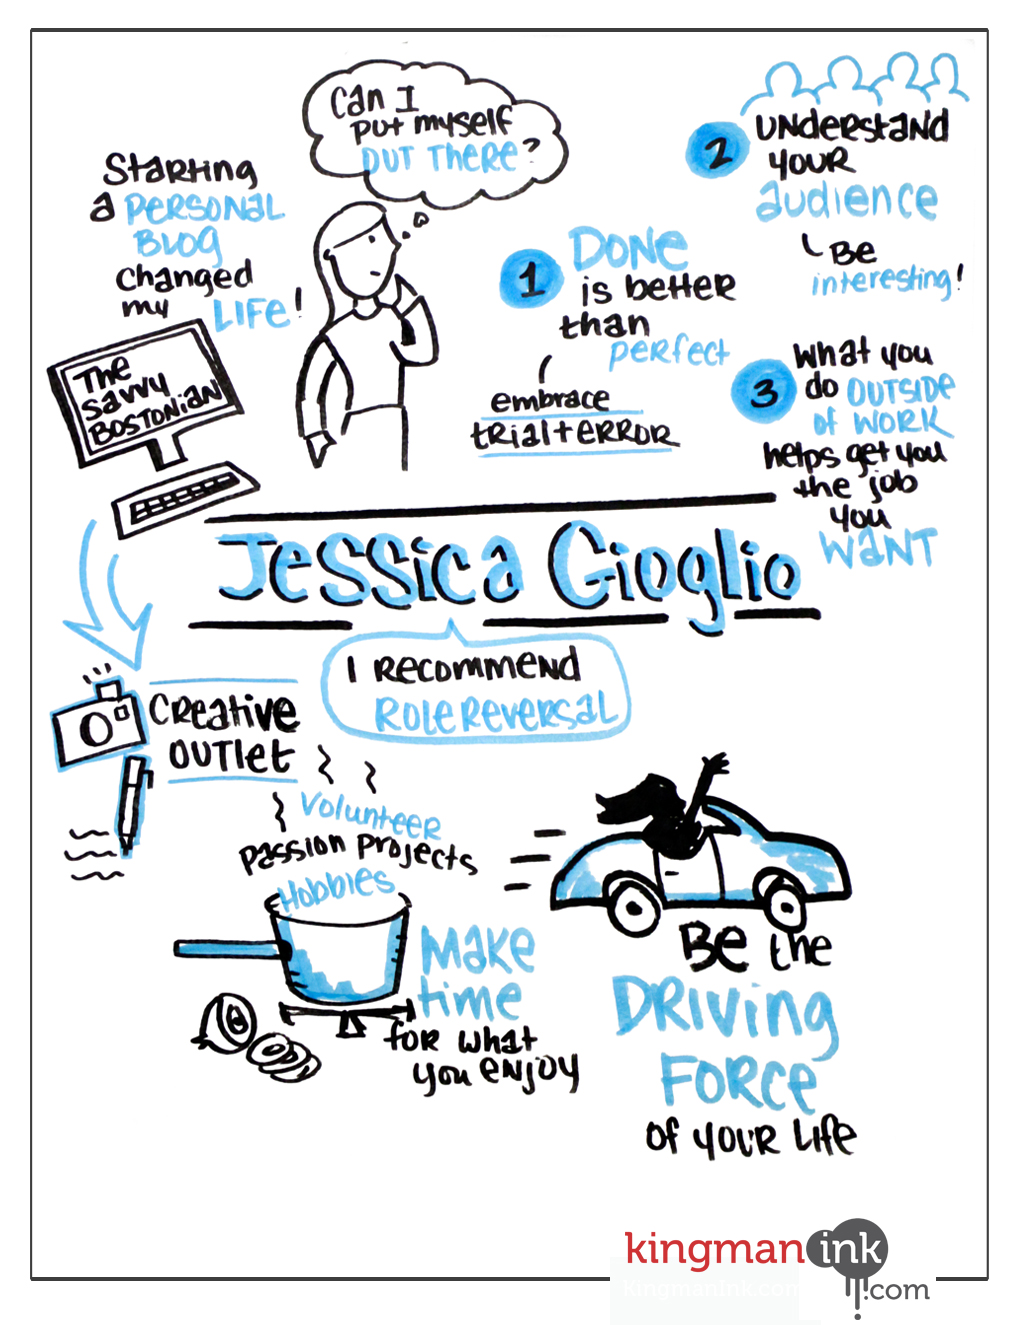 A Bostonian, A Blog & An Unexpected Discovery - Jessica Gioglio [INBOUND Bold Talk]